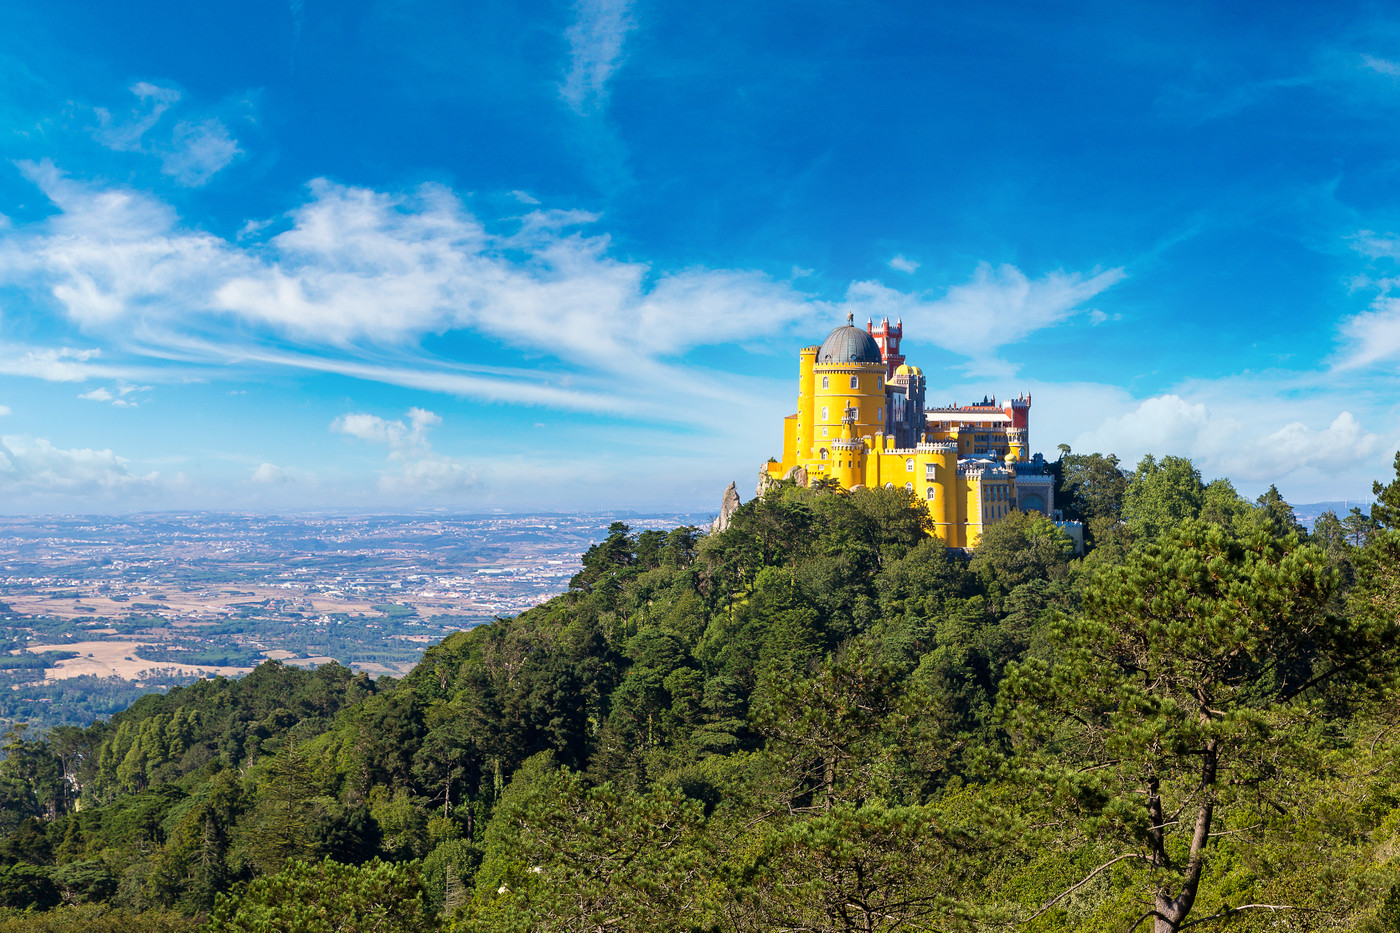 Park and National Palace of Pena, Sintra